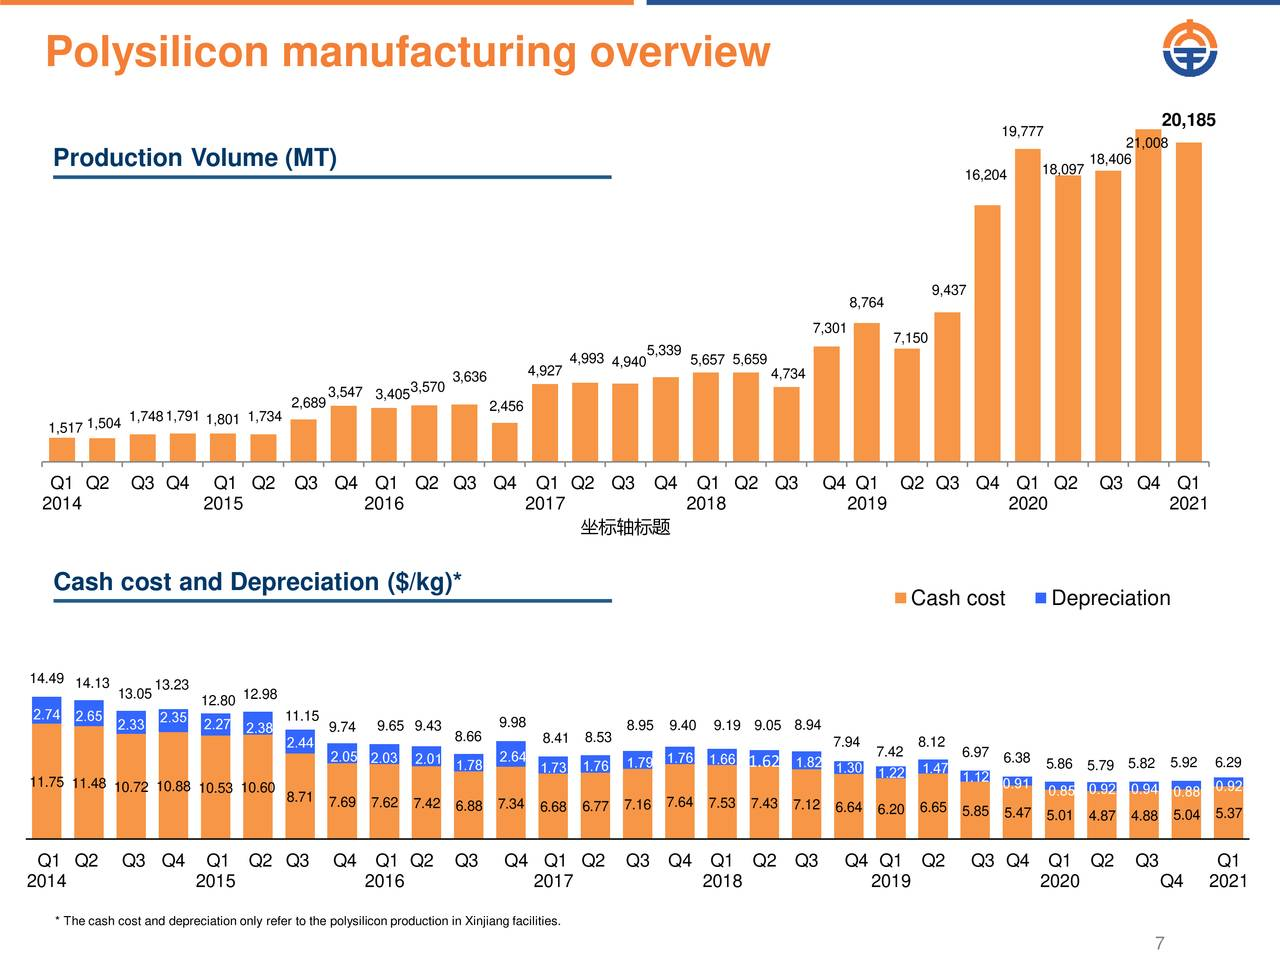 Polysilicon manufacturing overview